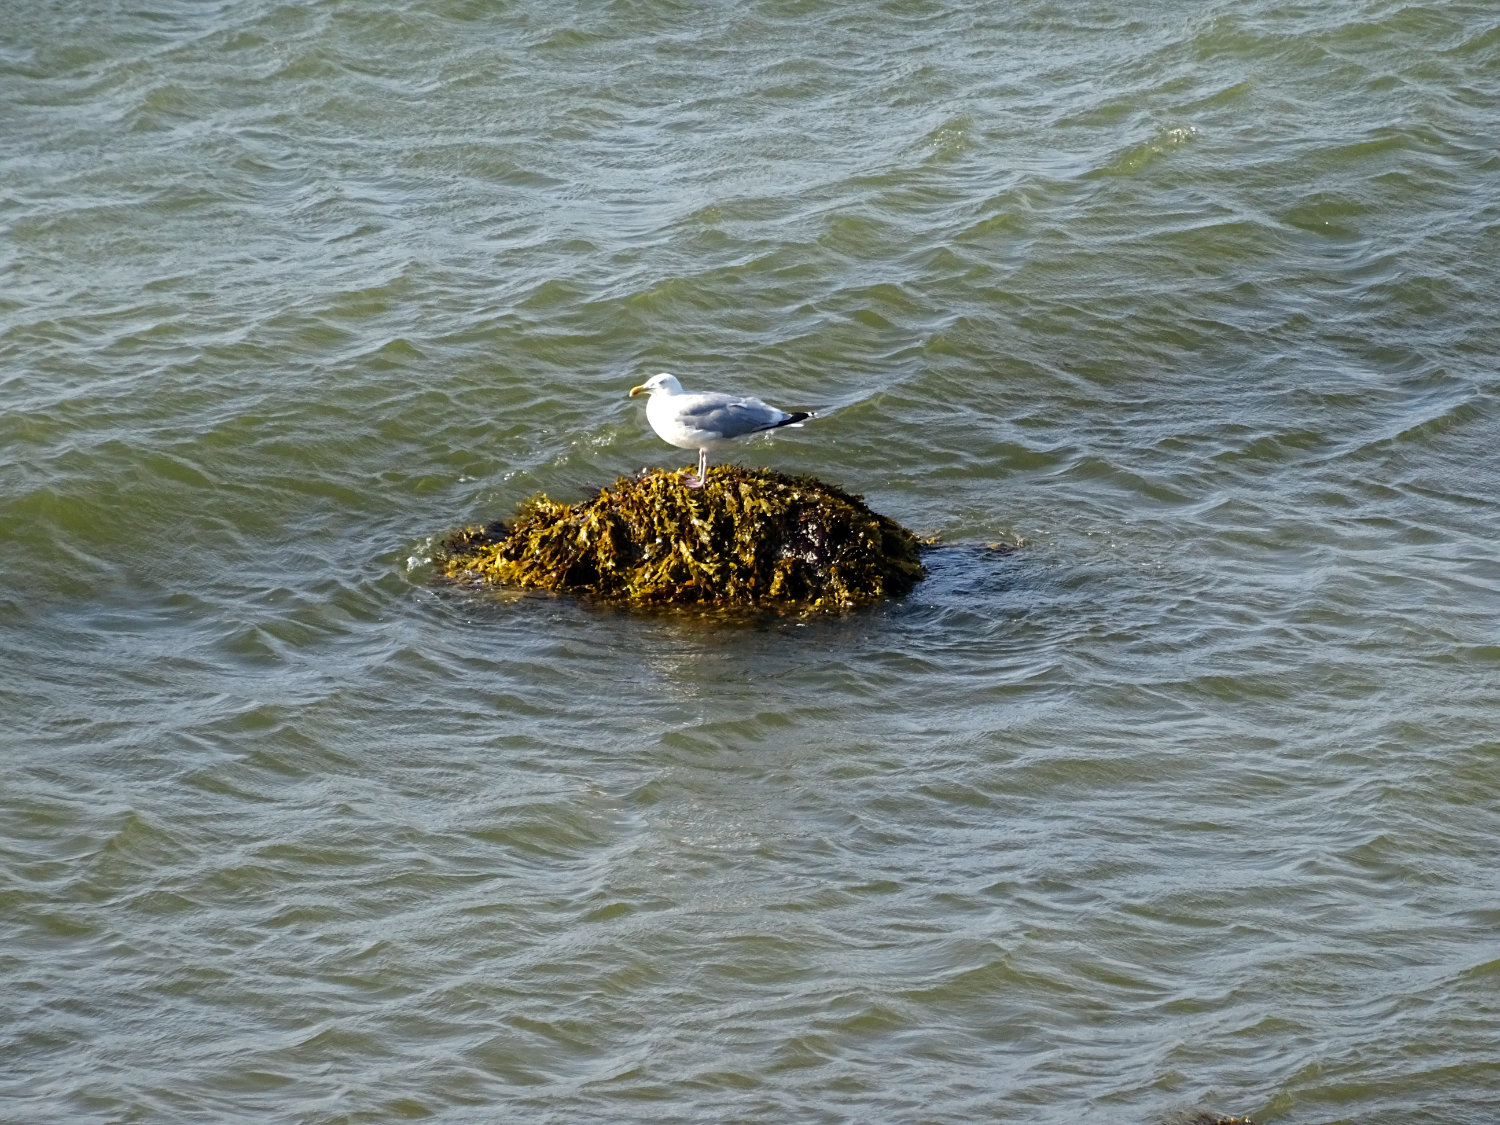 dry-footed seagull in the Baltic Sea